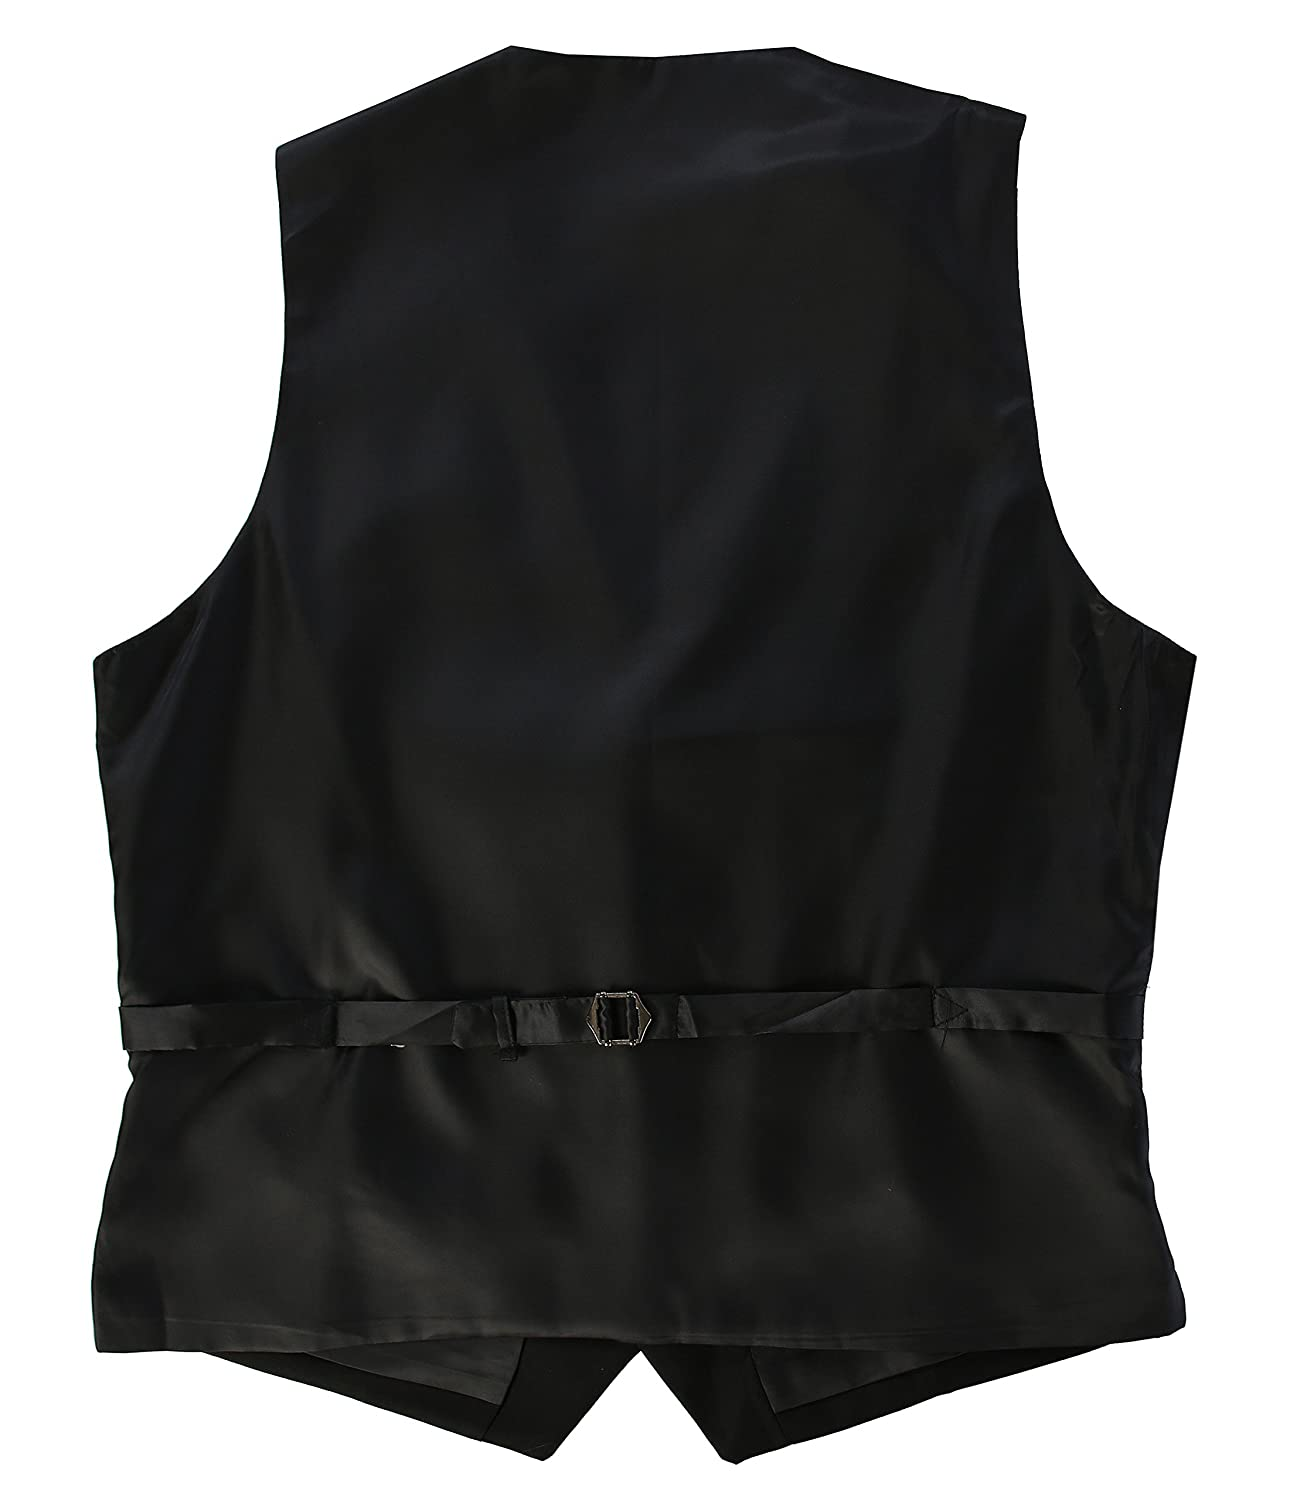 Men's Suit Vests | Amazon.com